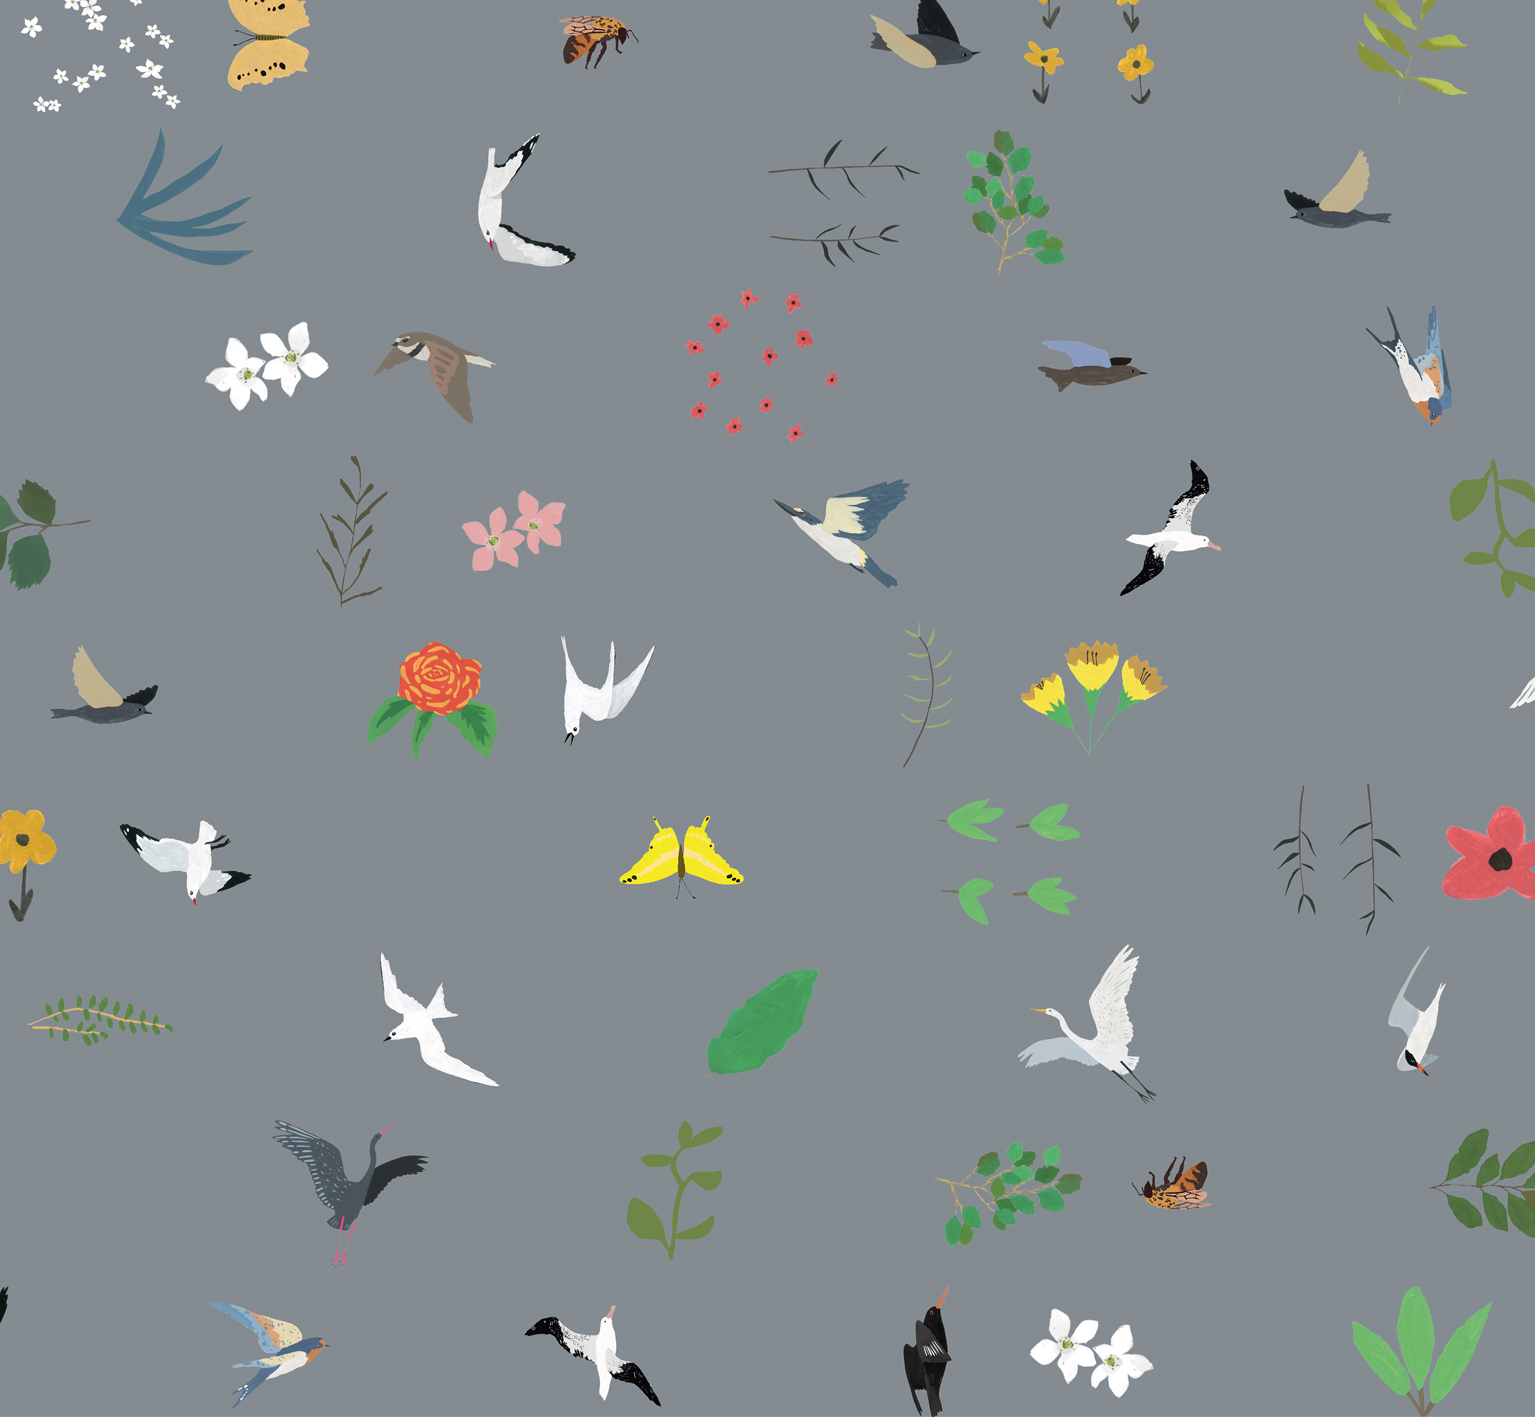 melissa boardman nature mash pattern grey.jpg